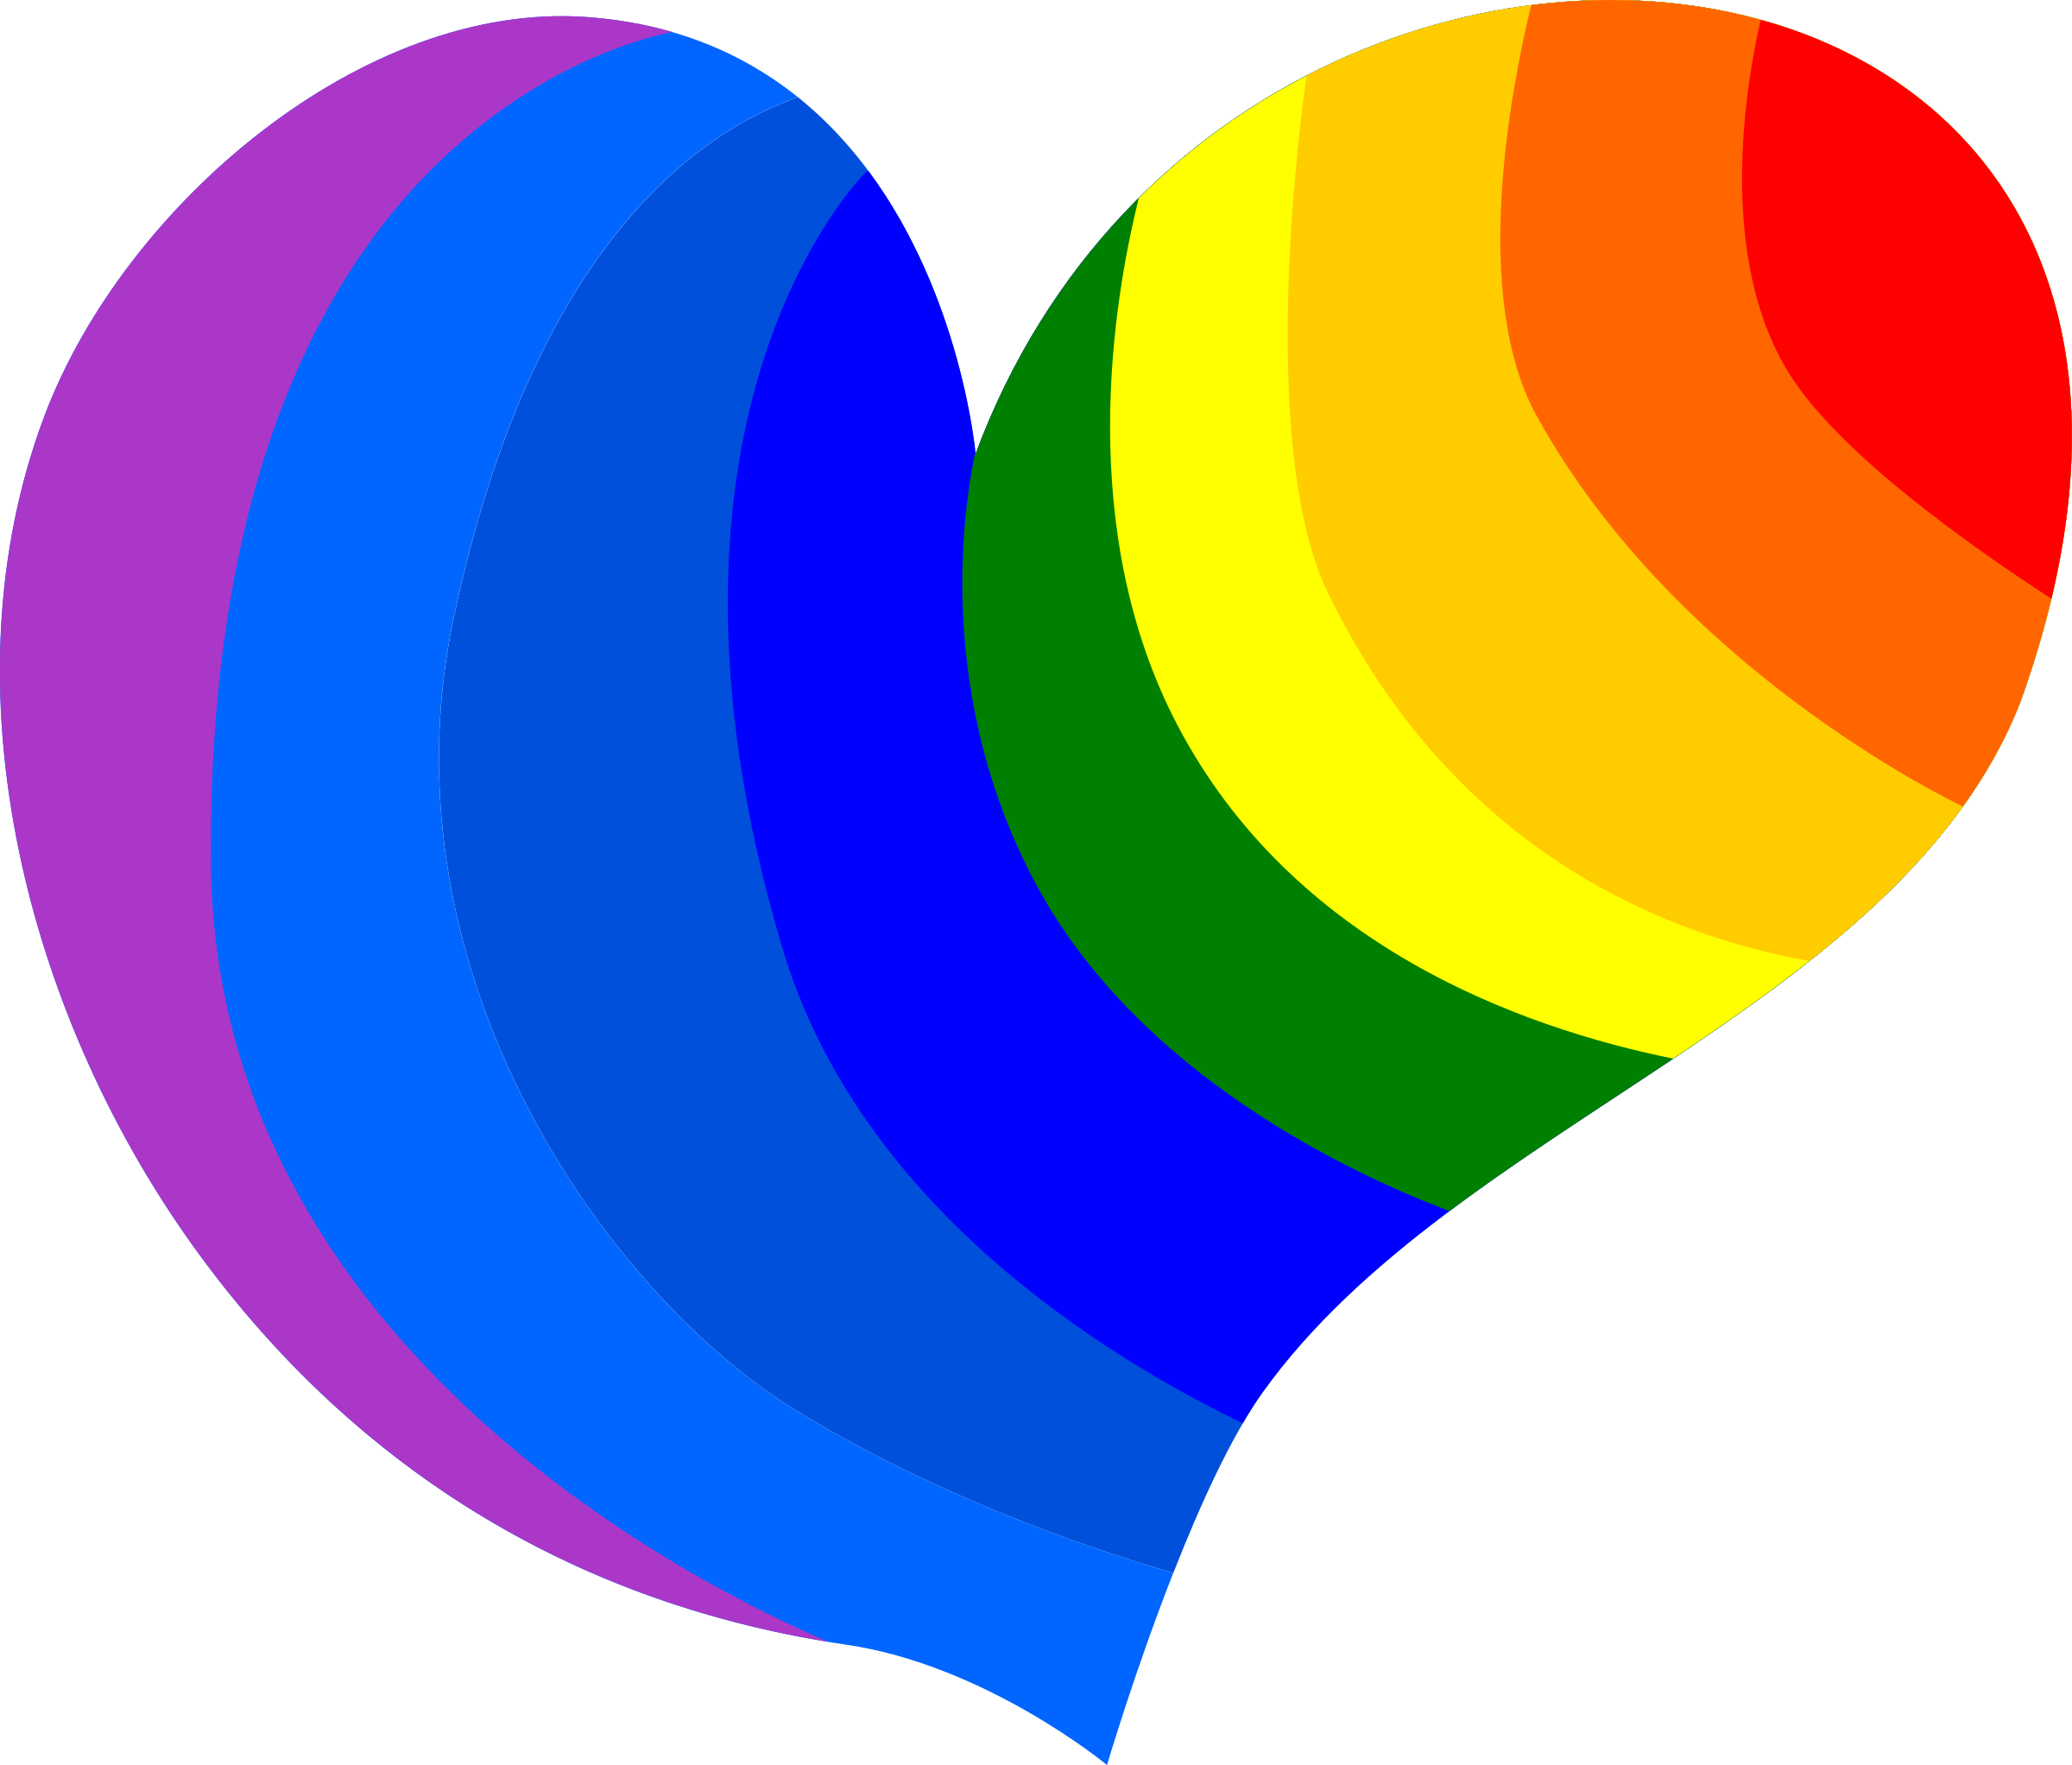 Clipart hippie heart big. Rainbow hearts png